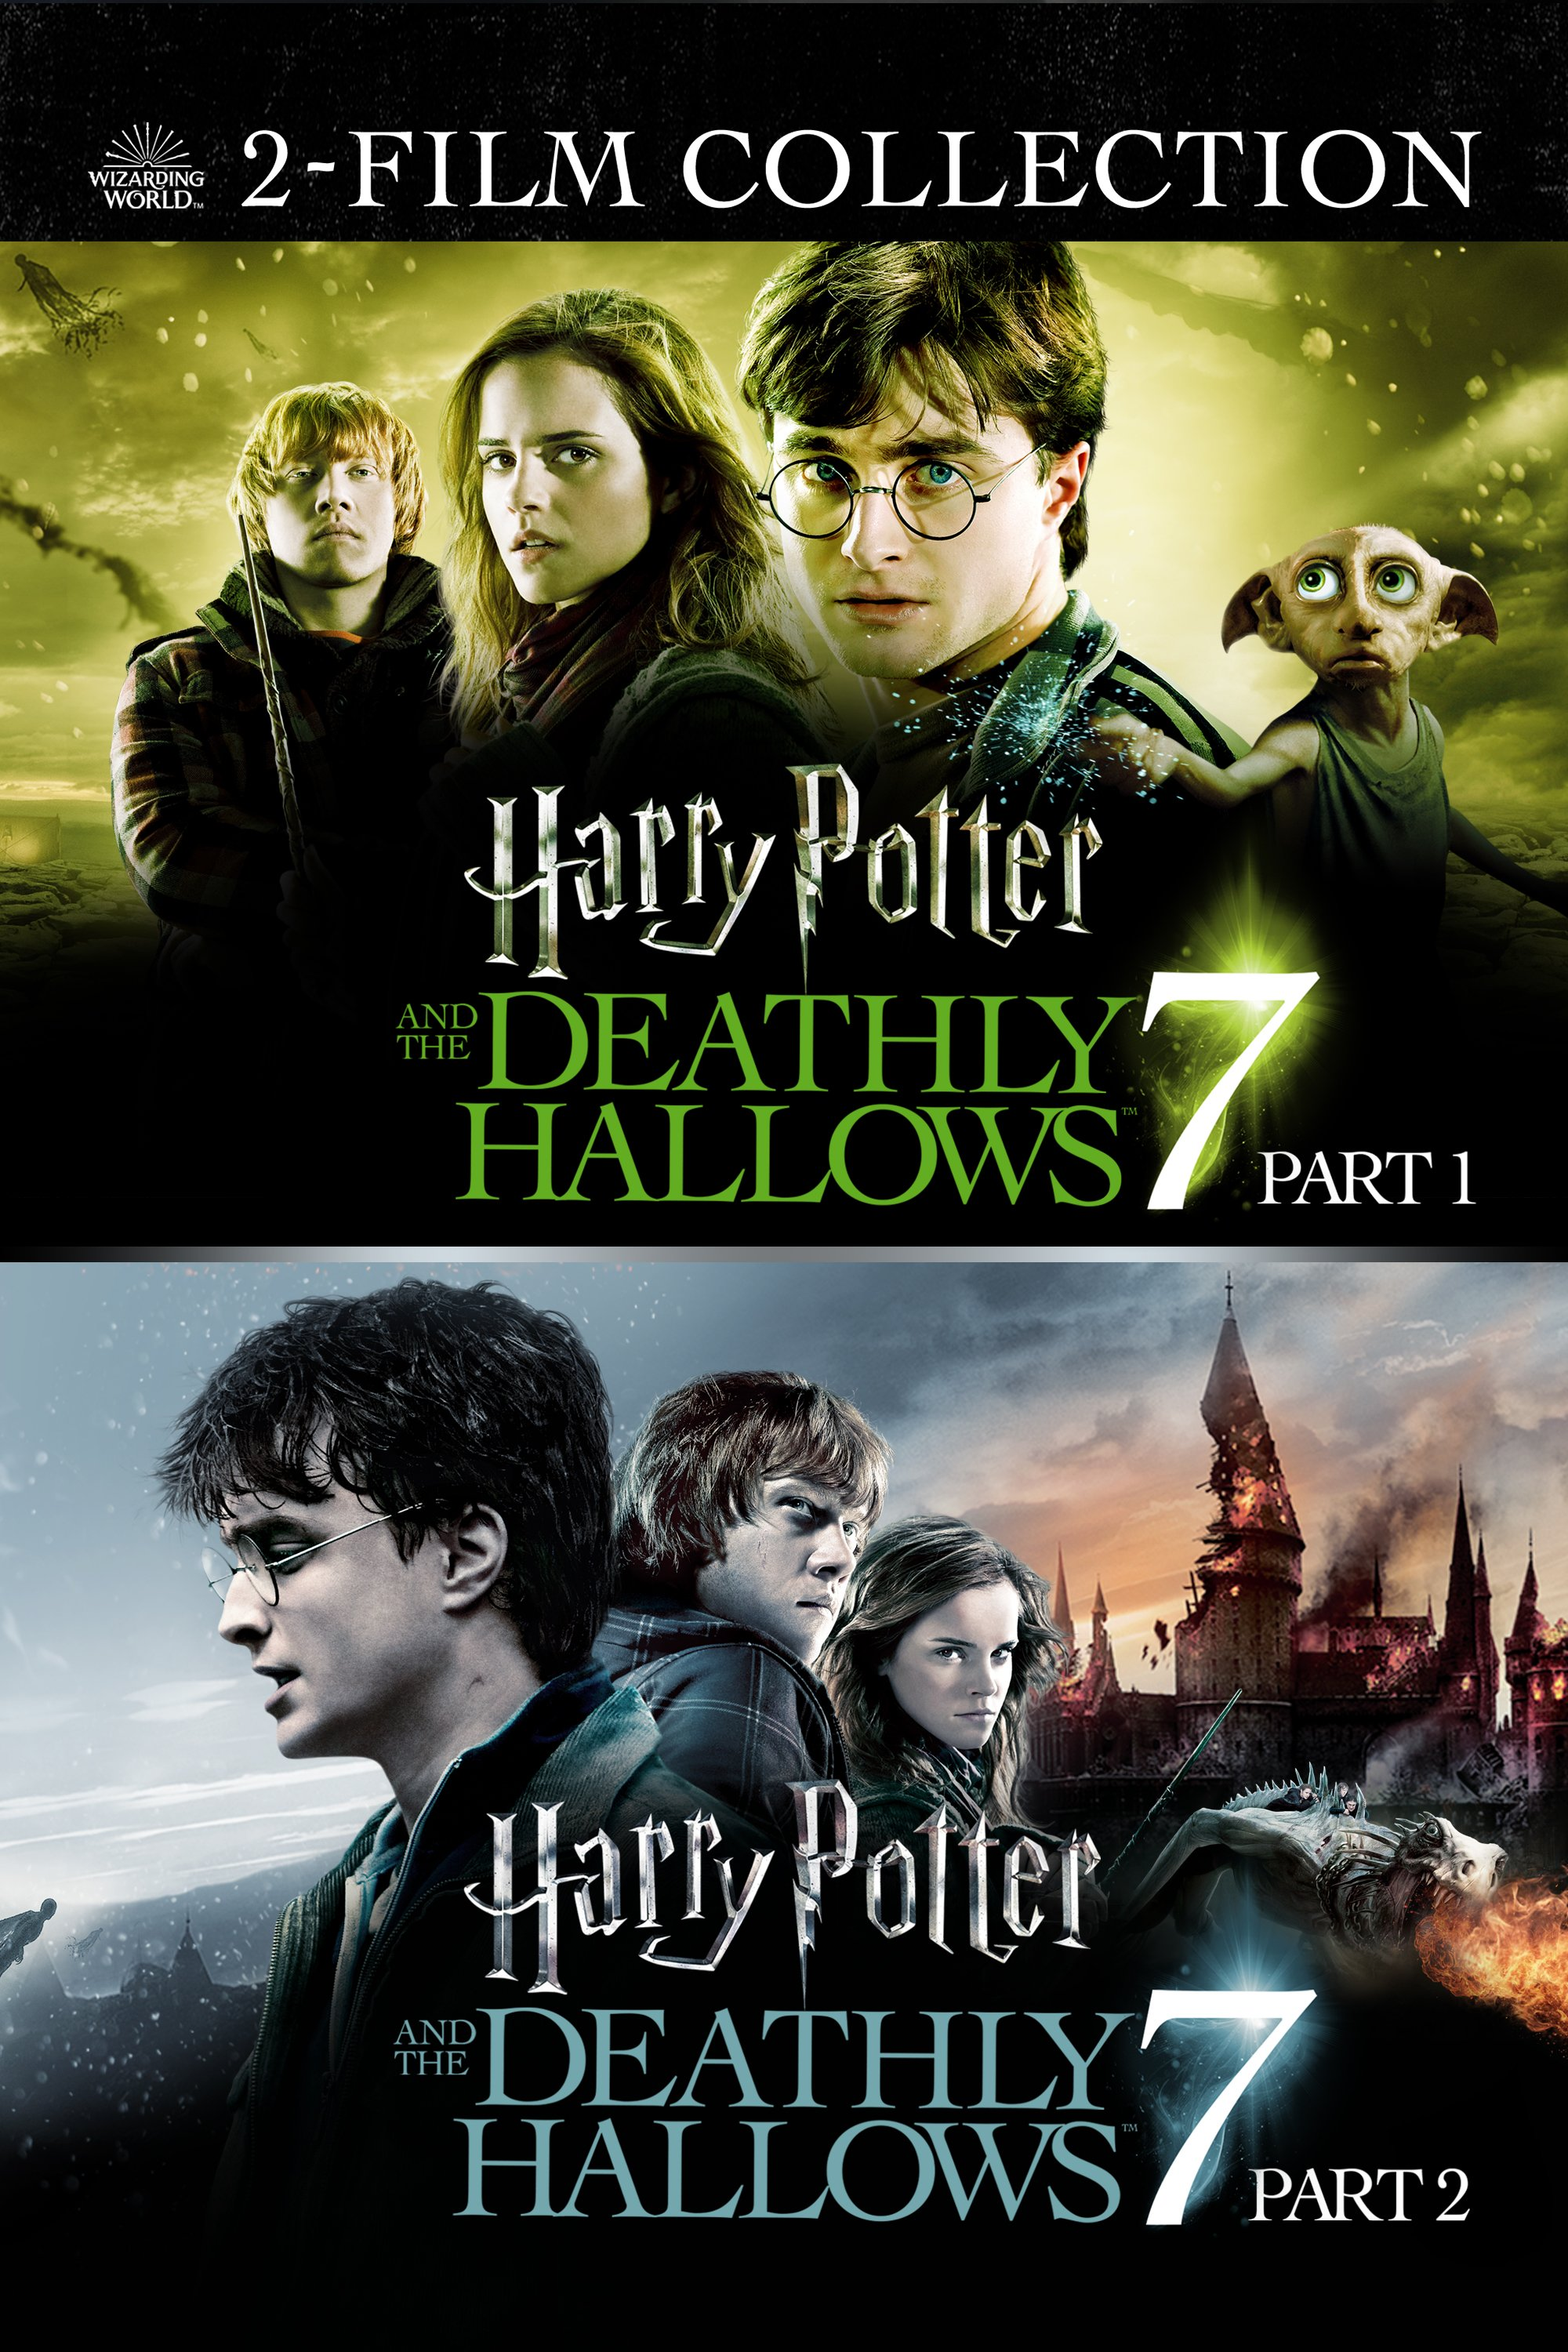 Harry Potter and the Deathly Hallows: Part 1 and 2